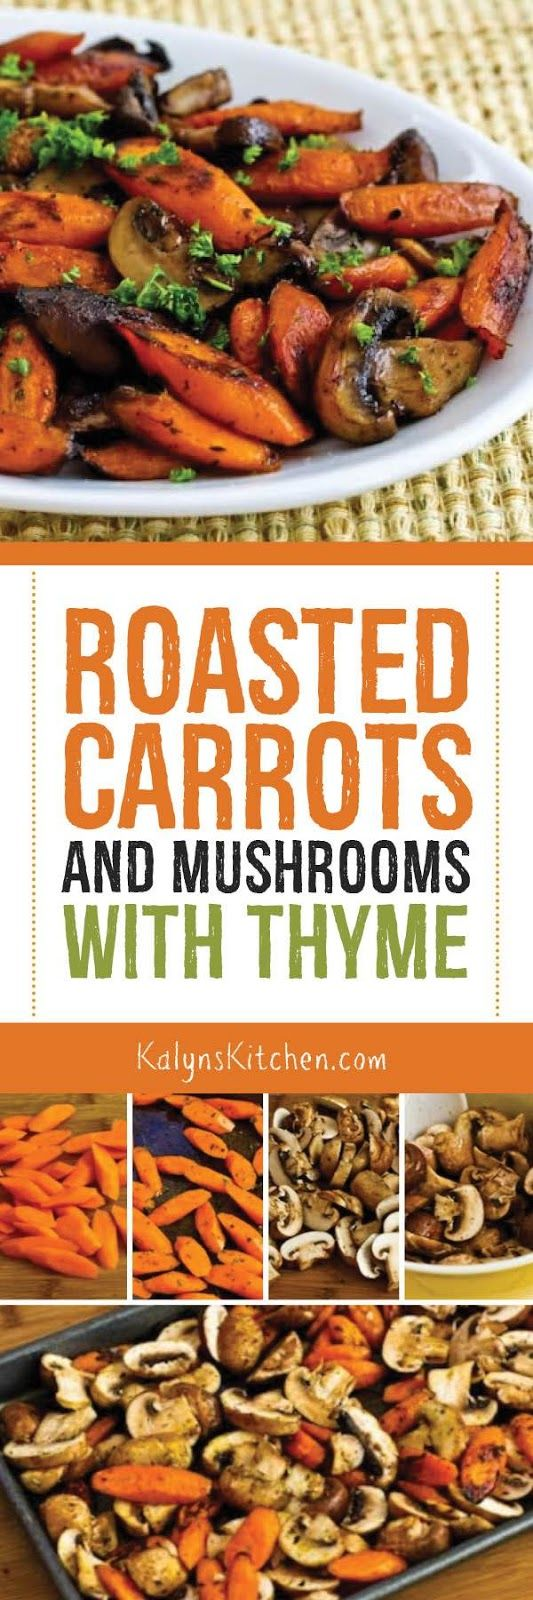 Roasted Carrots and Mushrooms with Thyme are AMAZING for a fall or winter side dish, and these tasty roasted carrots are gluten-free, vegan, Paleo, and Whole 30. If you want a lower-carb version, use less carrots and more mushrooms. [found on KalynsKitchen.com] #RoastedCarrots #RoastedCarrotsMushrooms #Paleo #Whole30